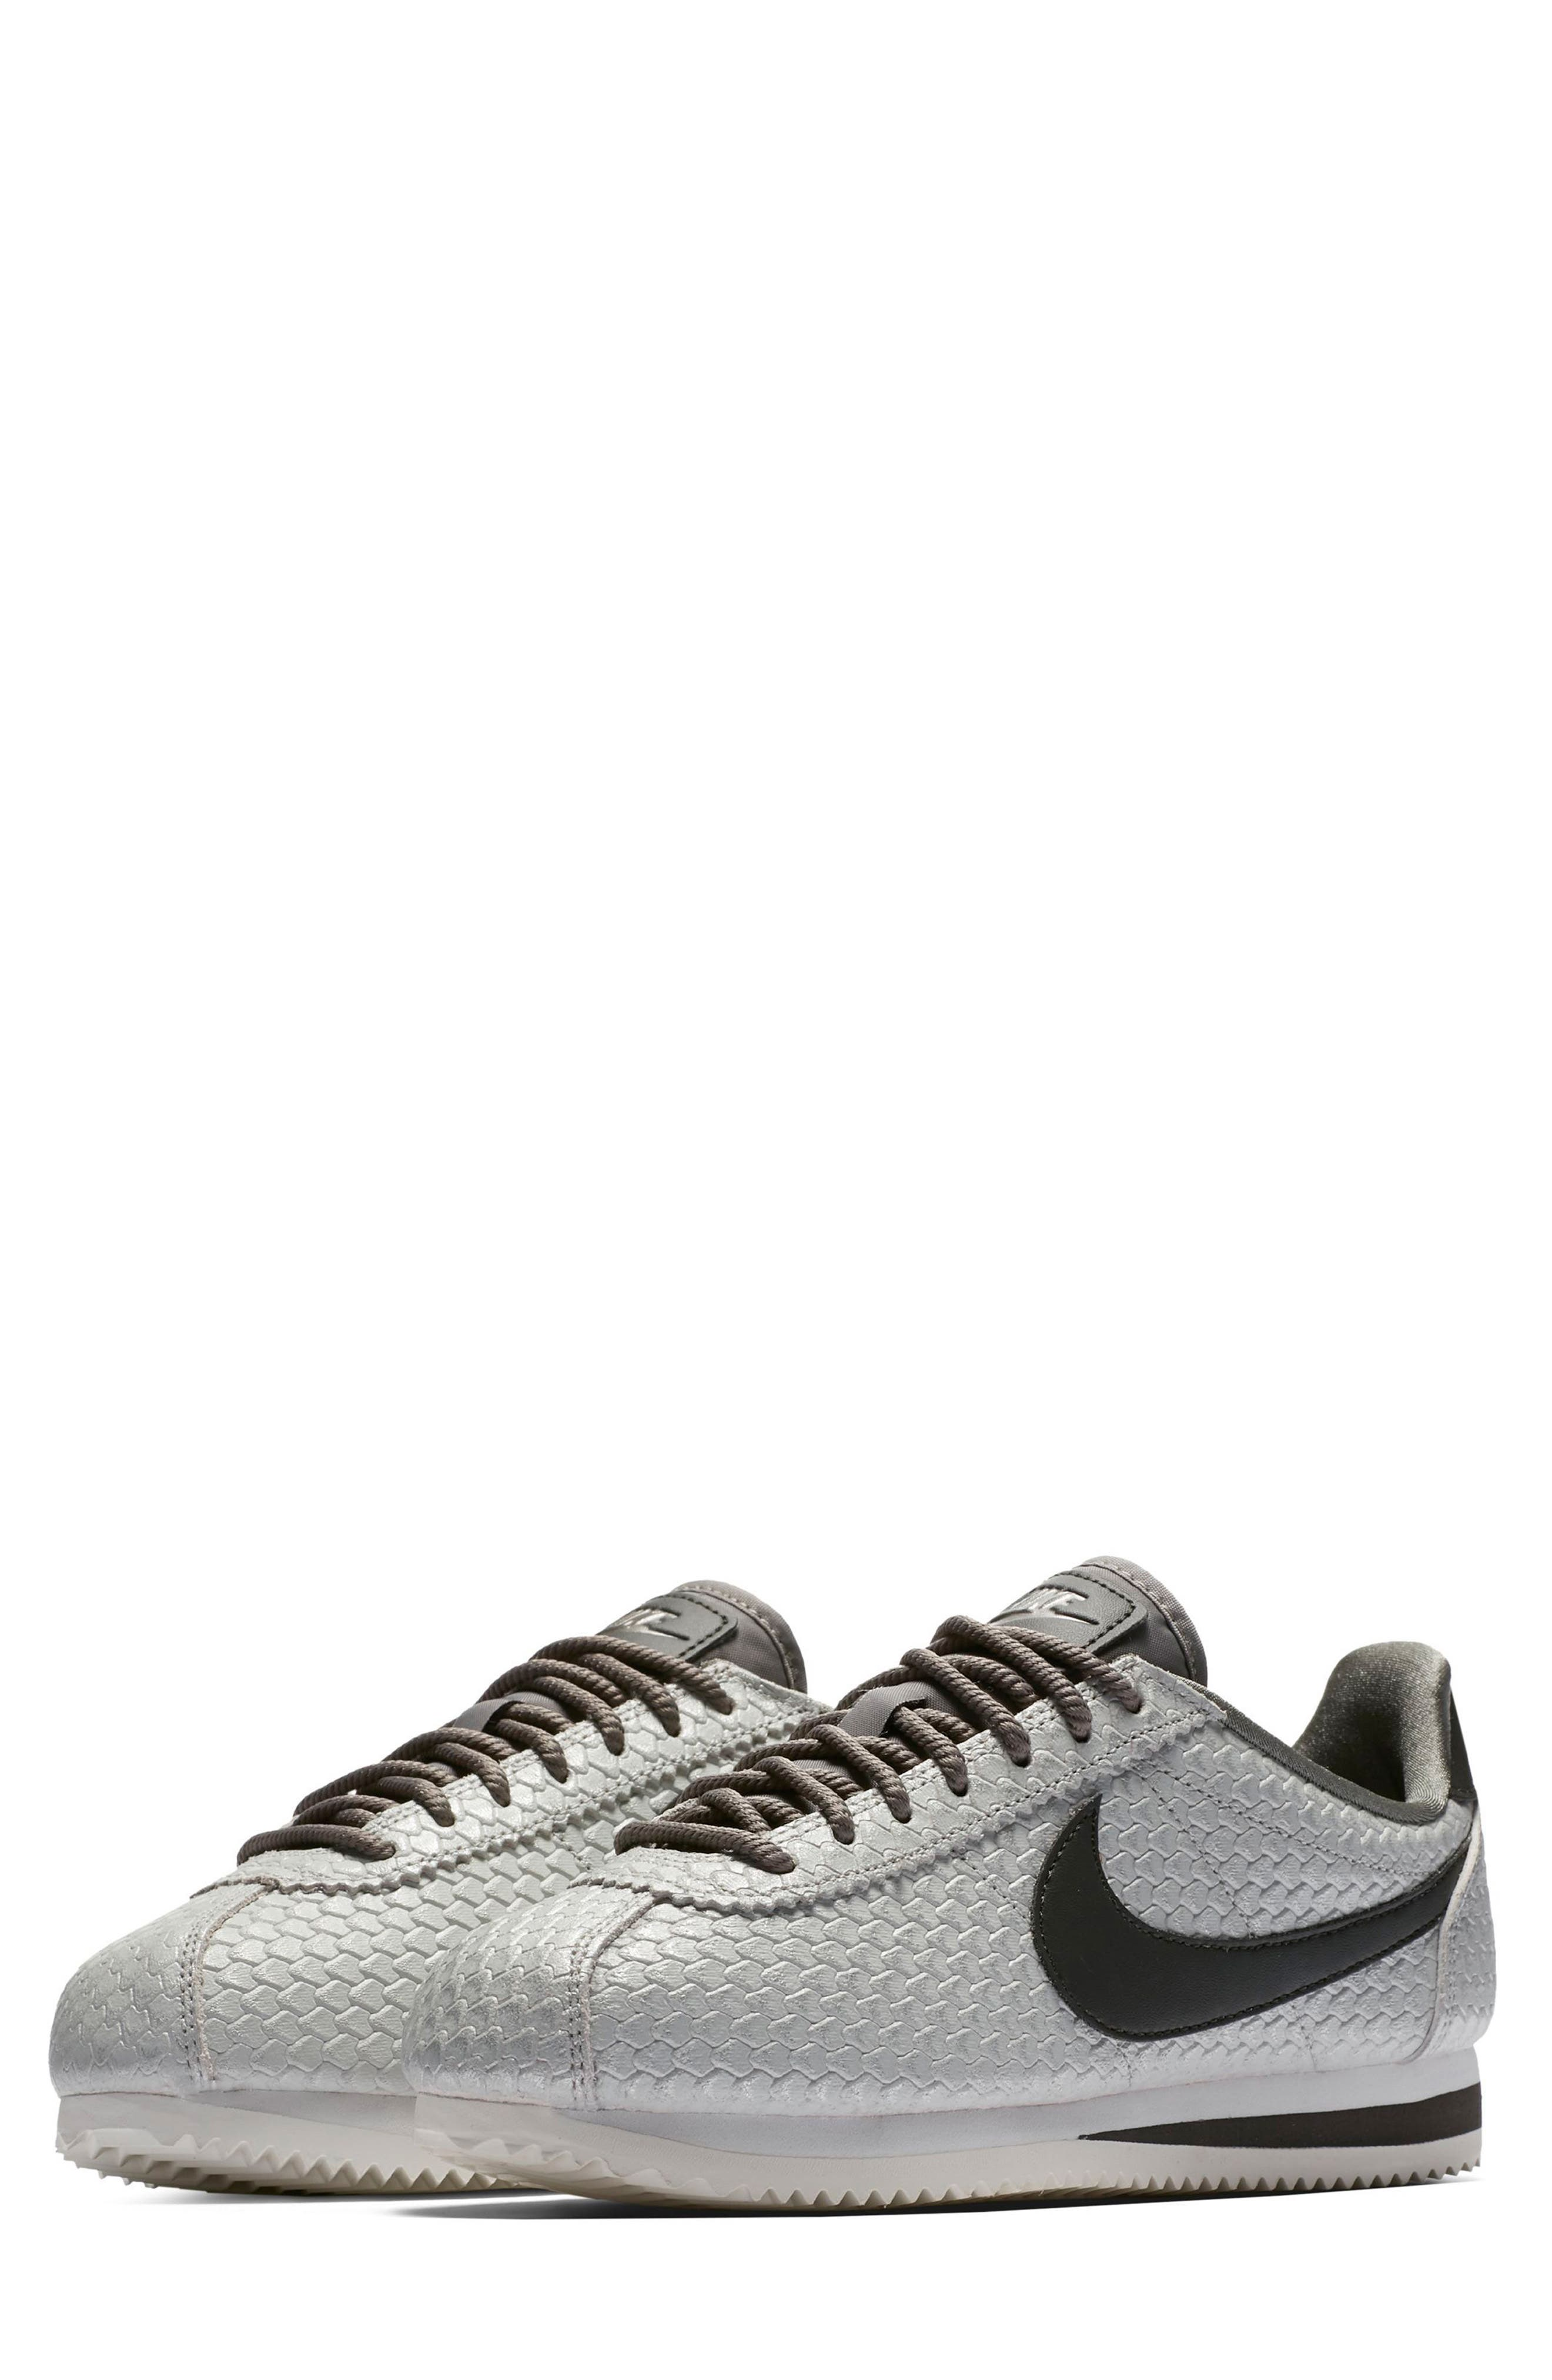 Classic Cortez SE Sneaker,                         Main,                         color, Pewter/ Pewter/ White